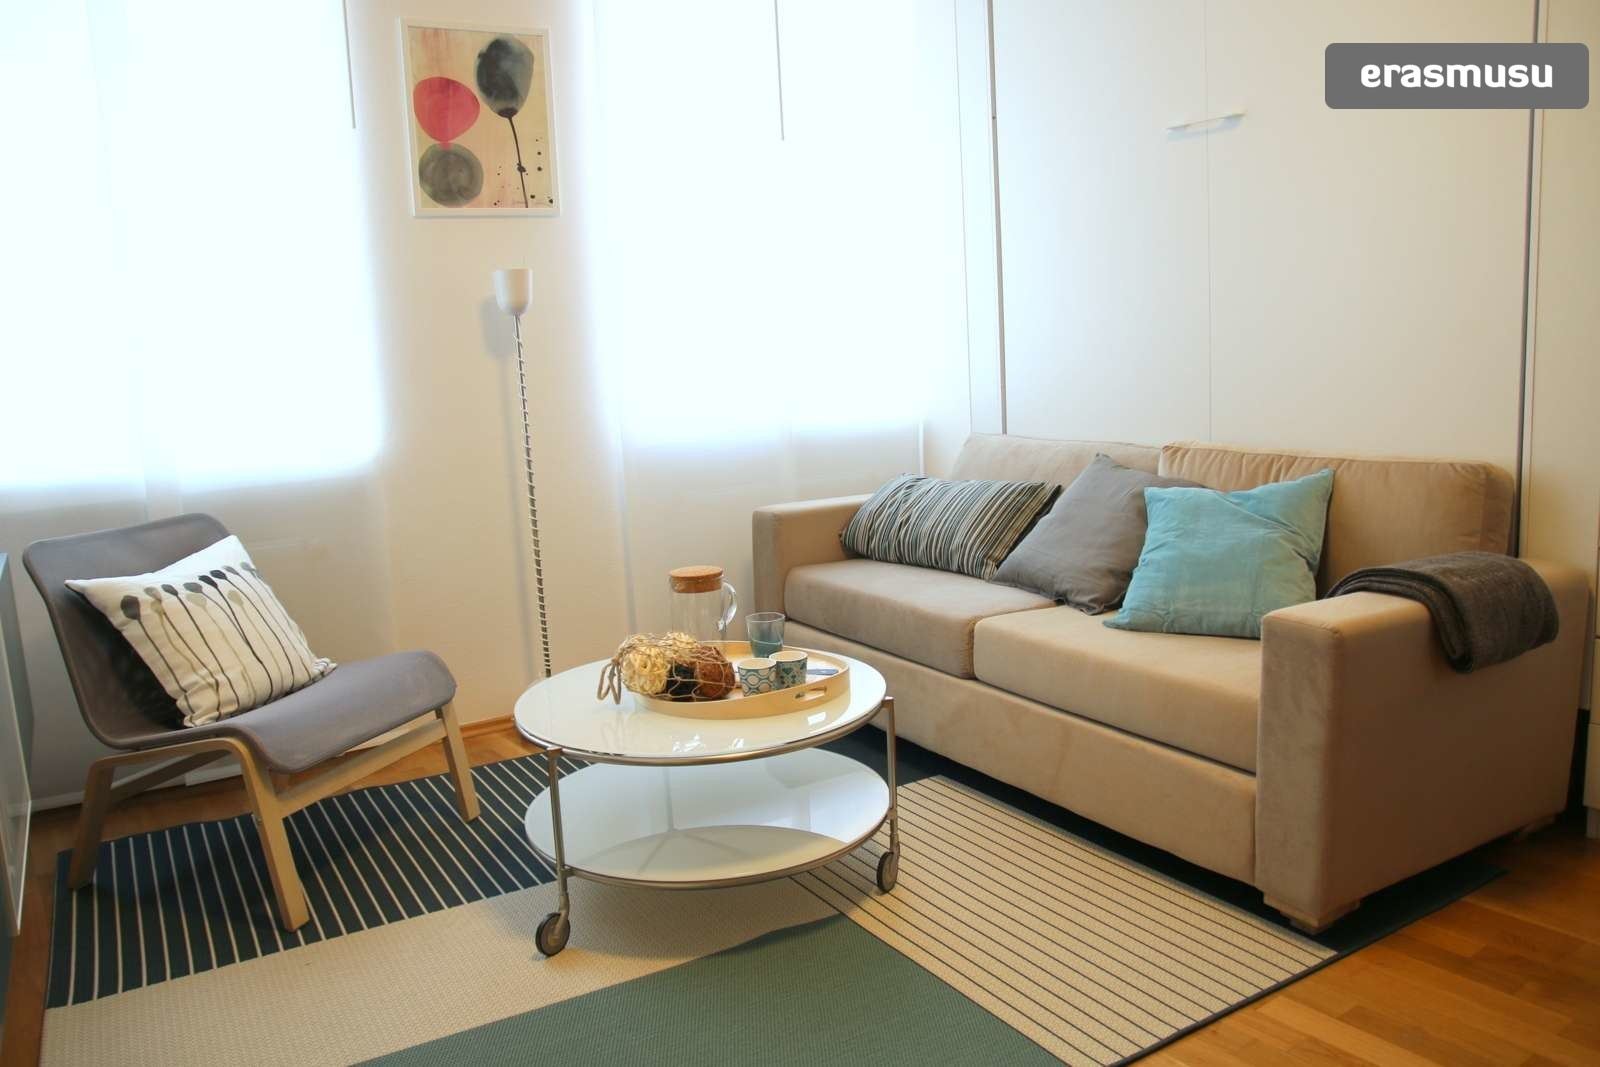 lovely-studio-apartment-rent-wahring-d7504c02823524f8832ed7bca52